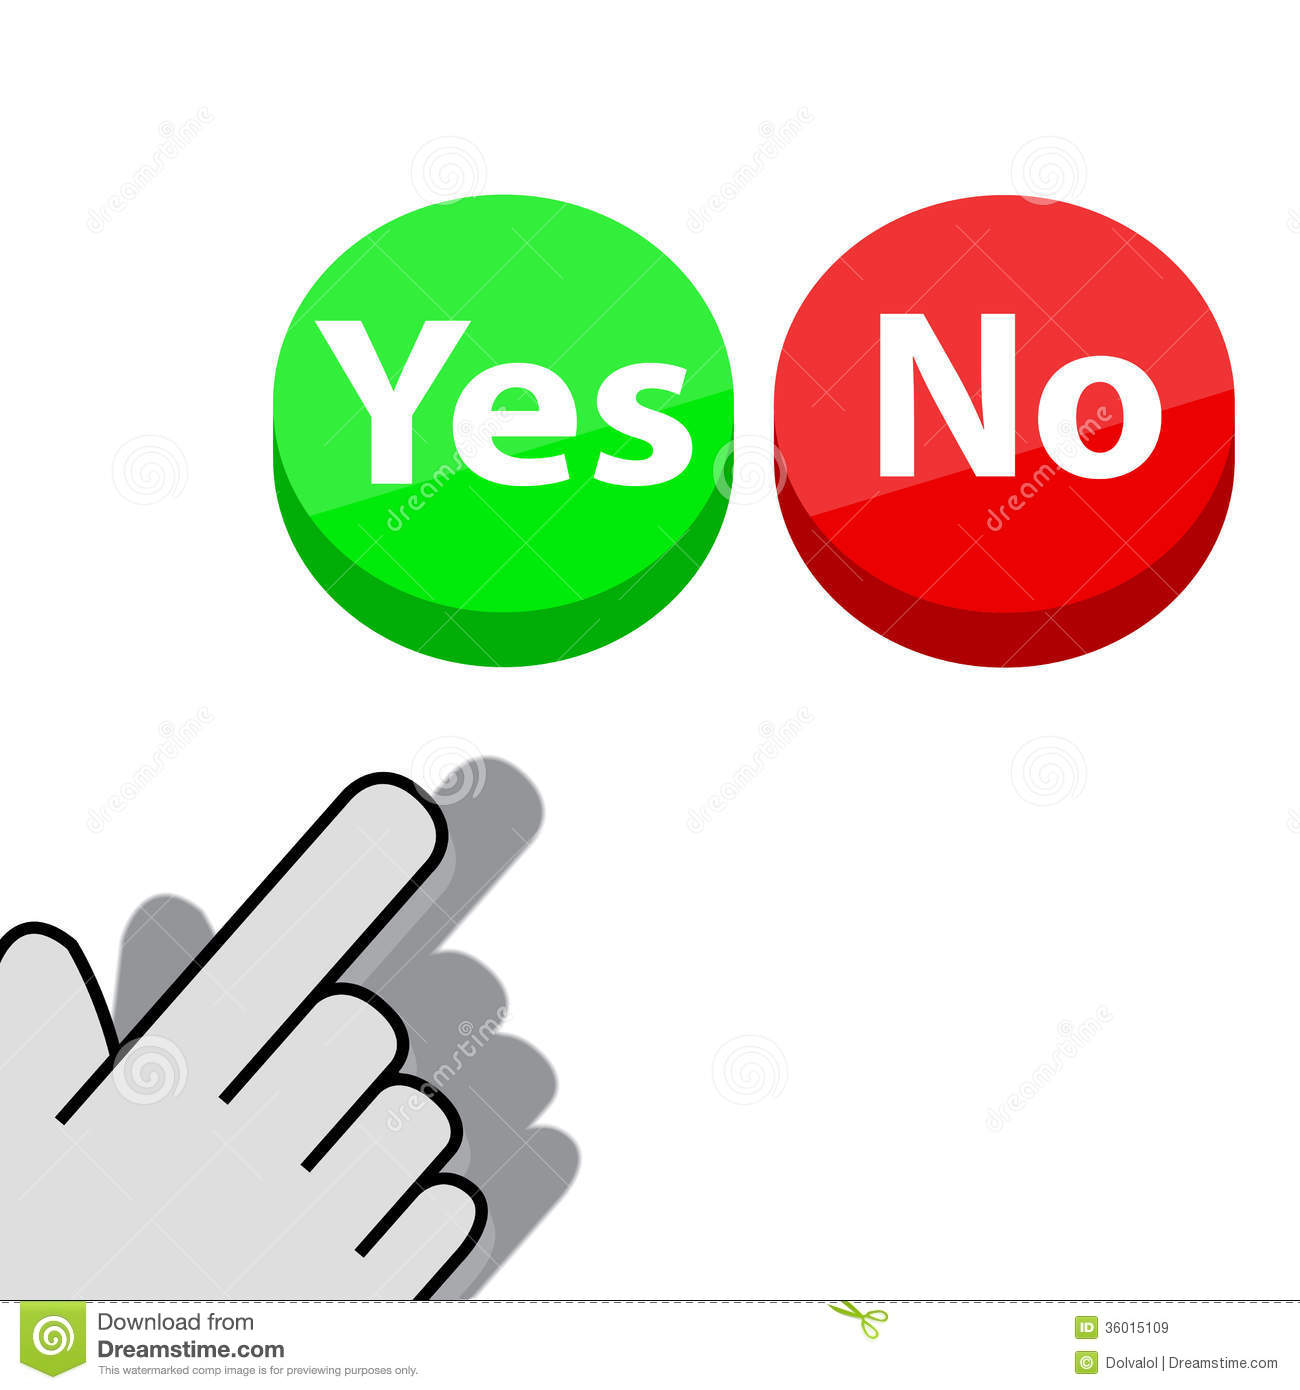 Click on button Yes or No